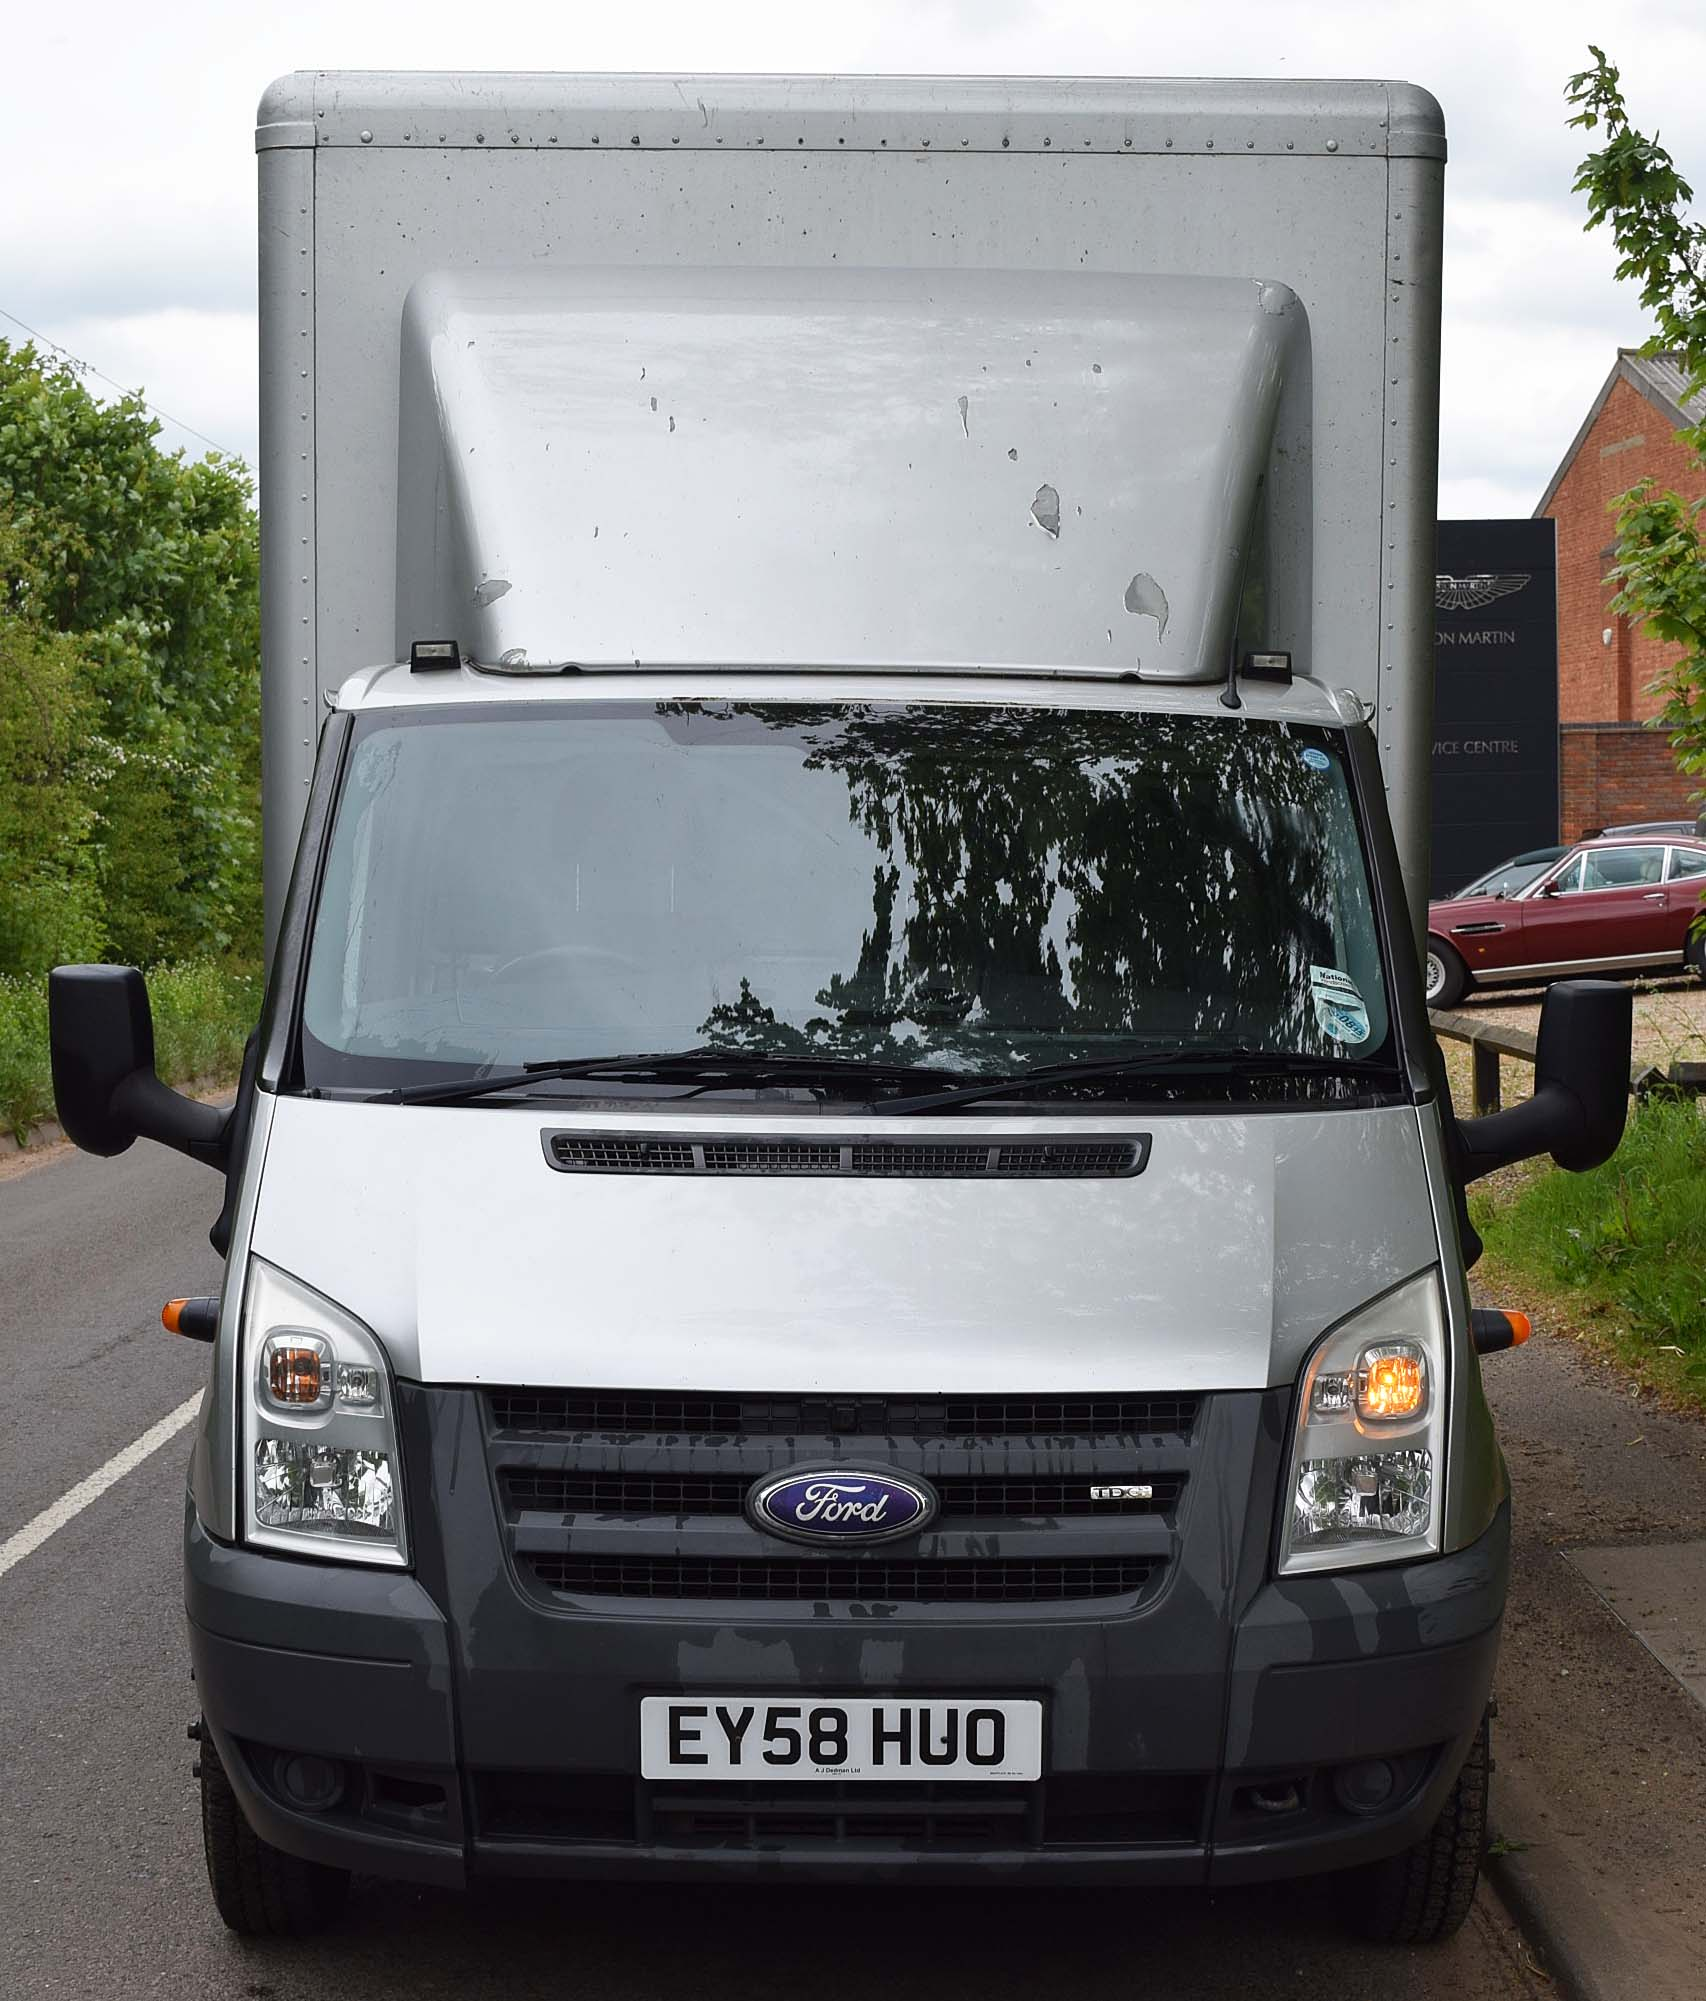 Lot 37 - 2008 FORD Transit 115 T350L 2.4L Diesel Box Van. 6-Speed Manual, Air Deflector, RATCLIFFE PALFINGER